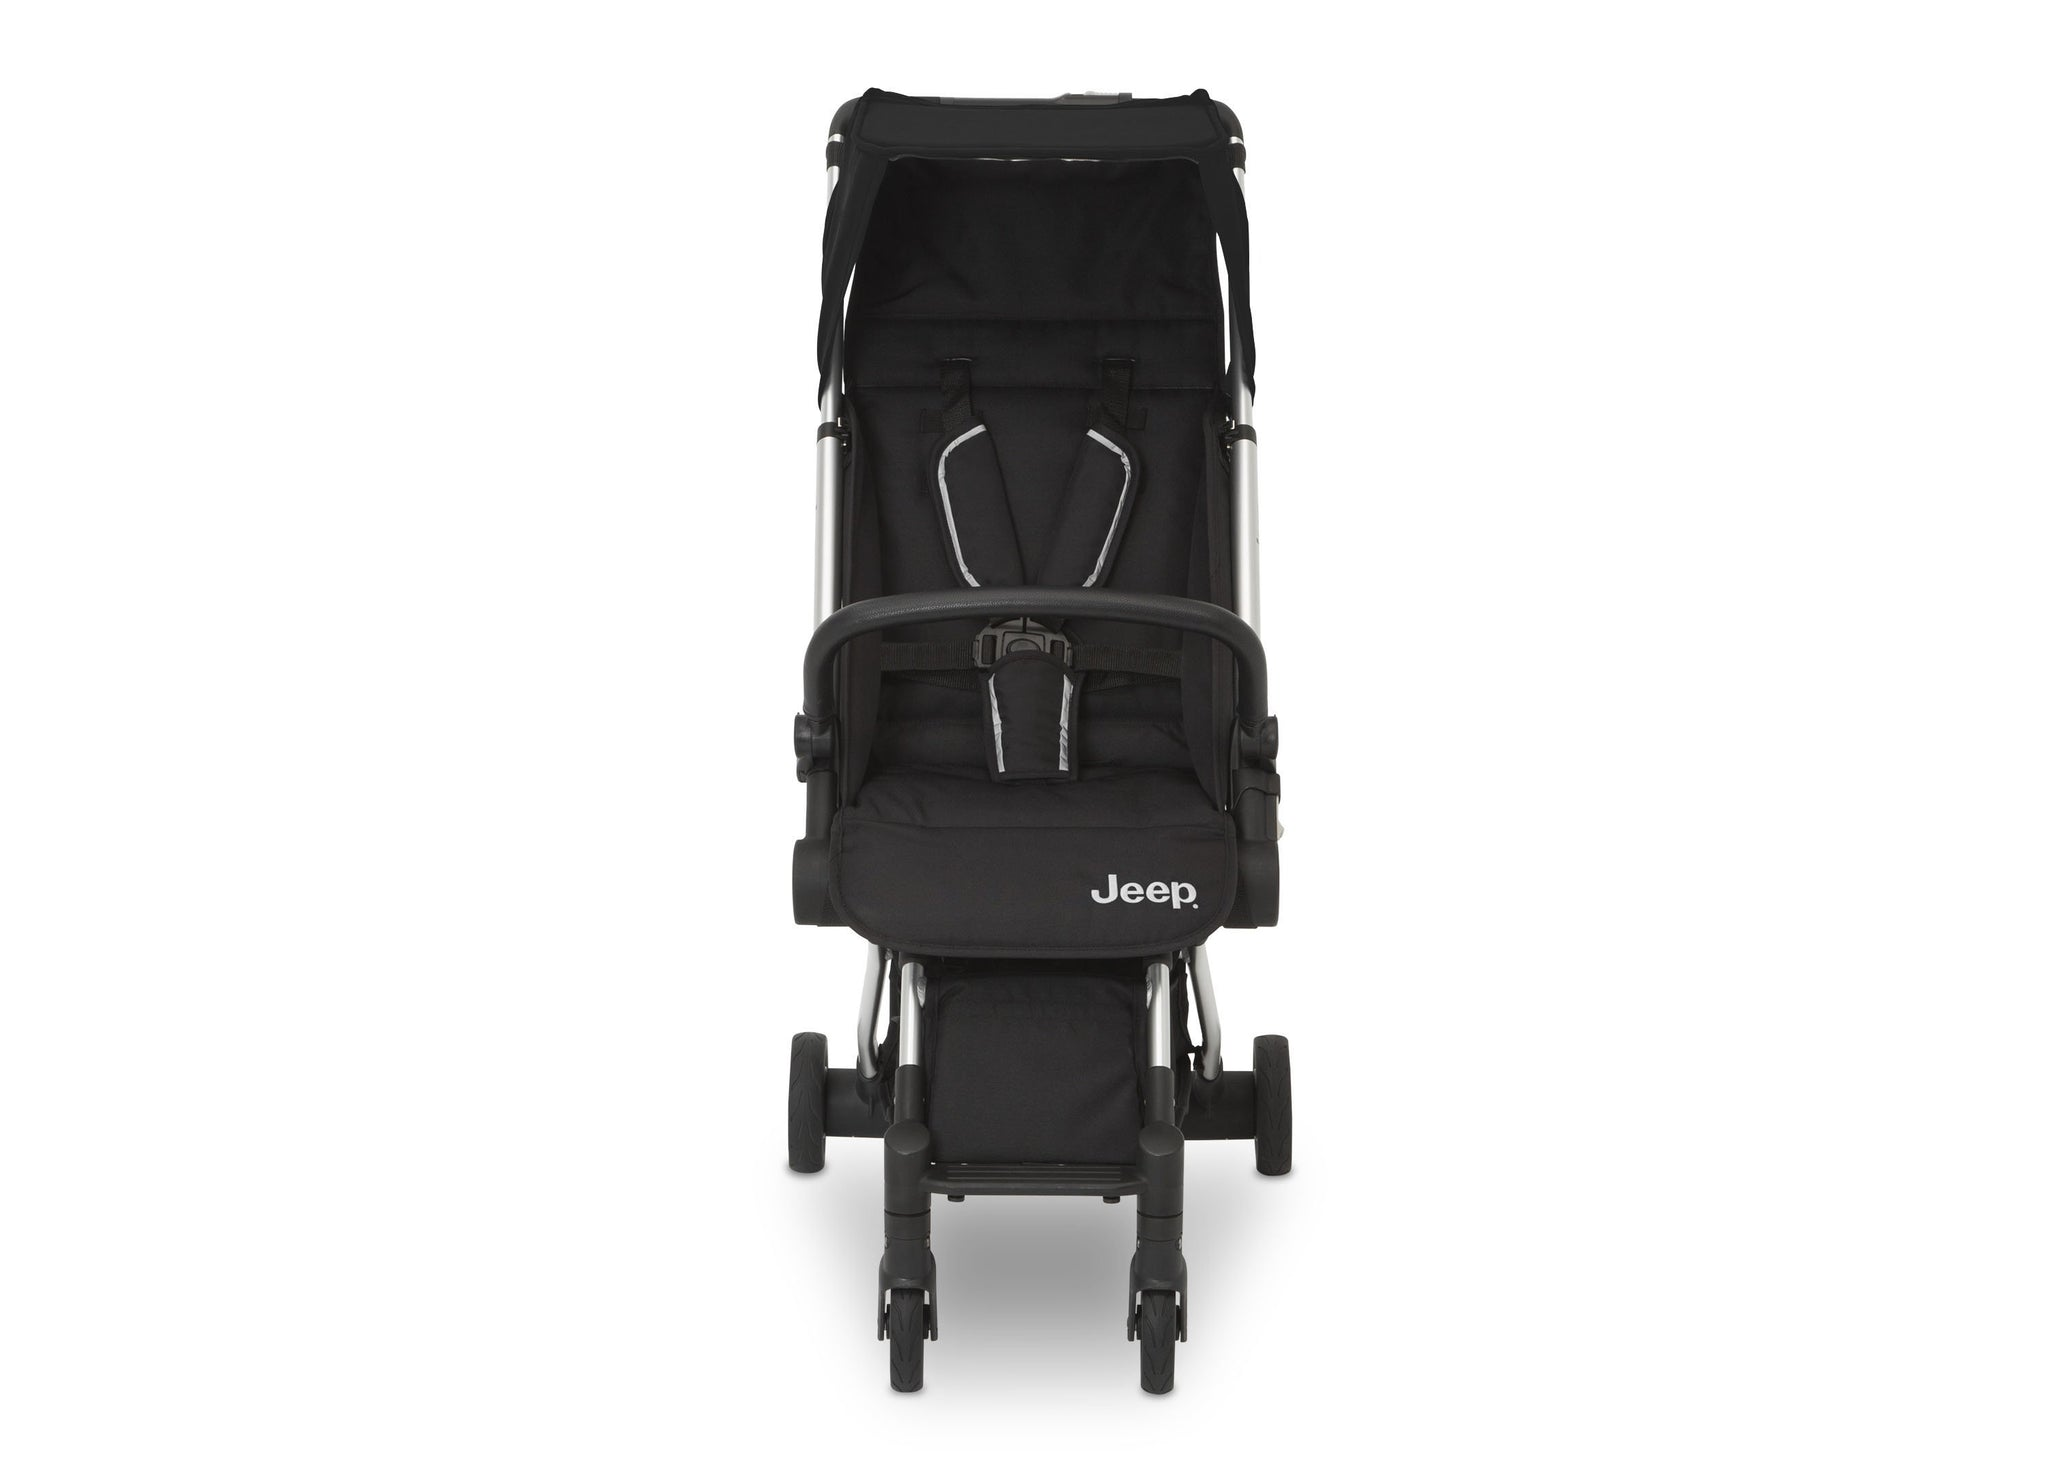 Jeep Jet Black (2095) Arrow Travel Stroller, Front Silo View